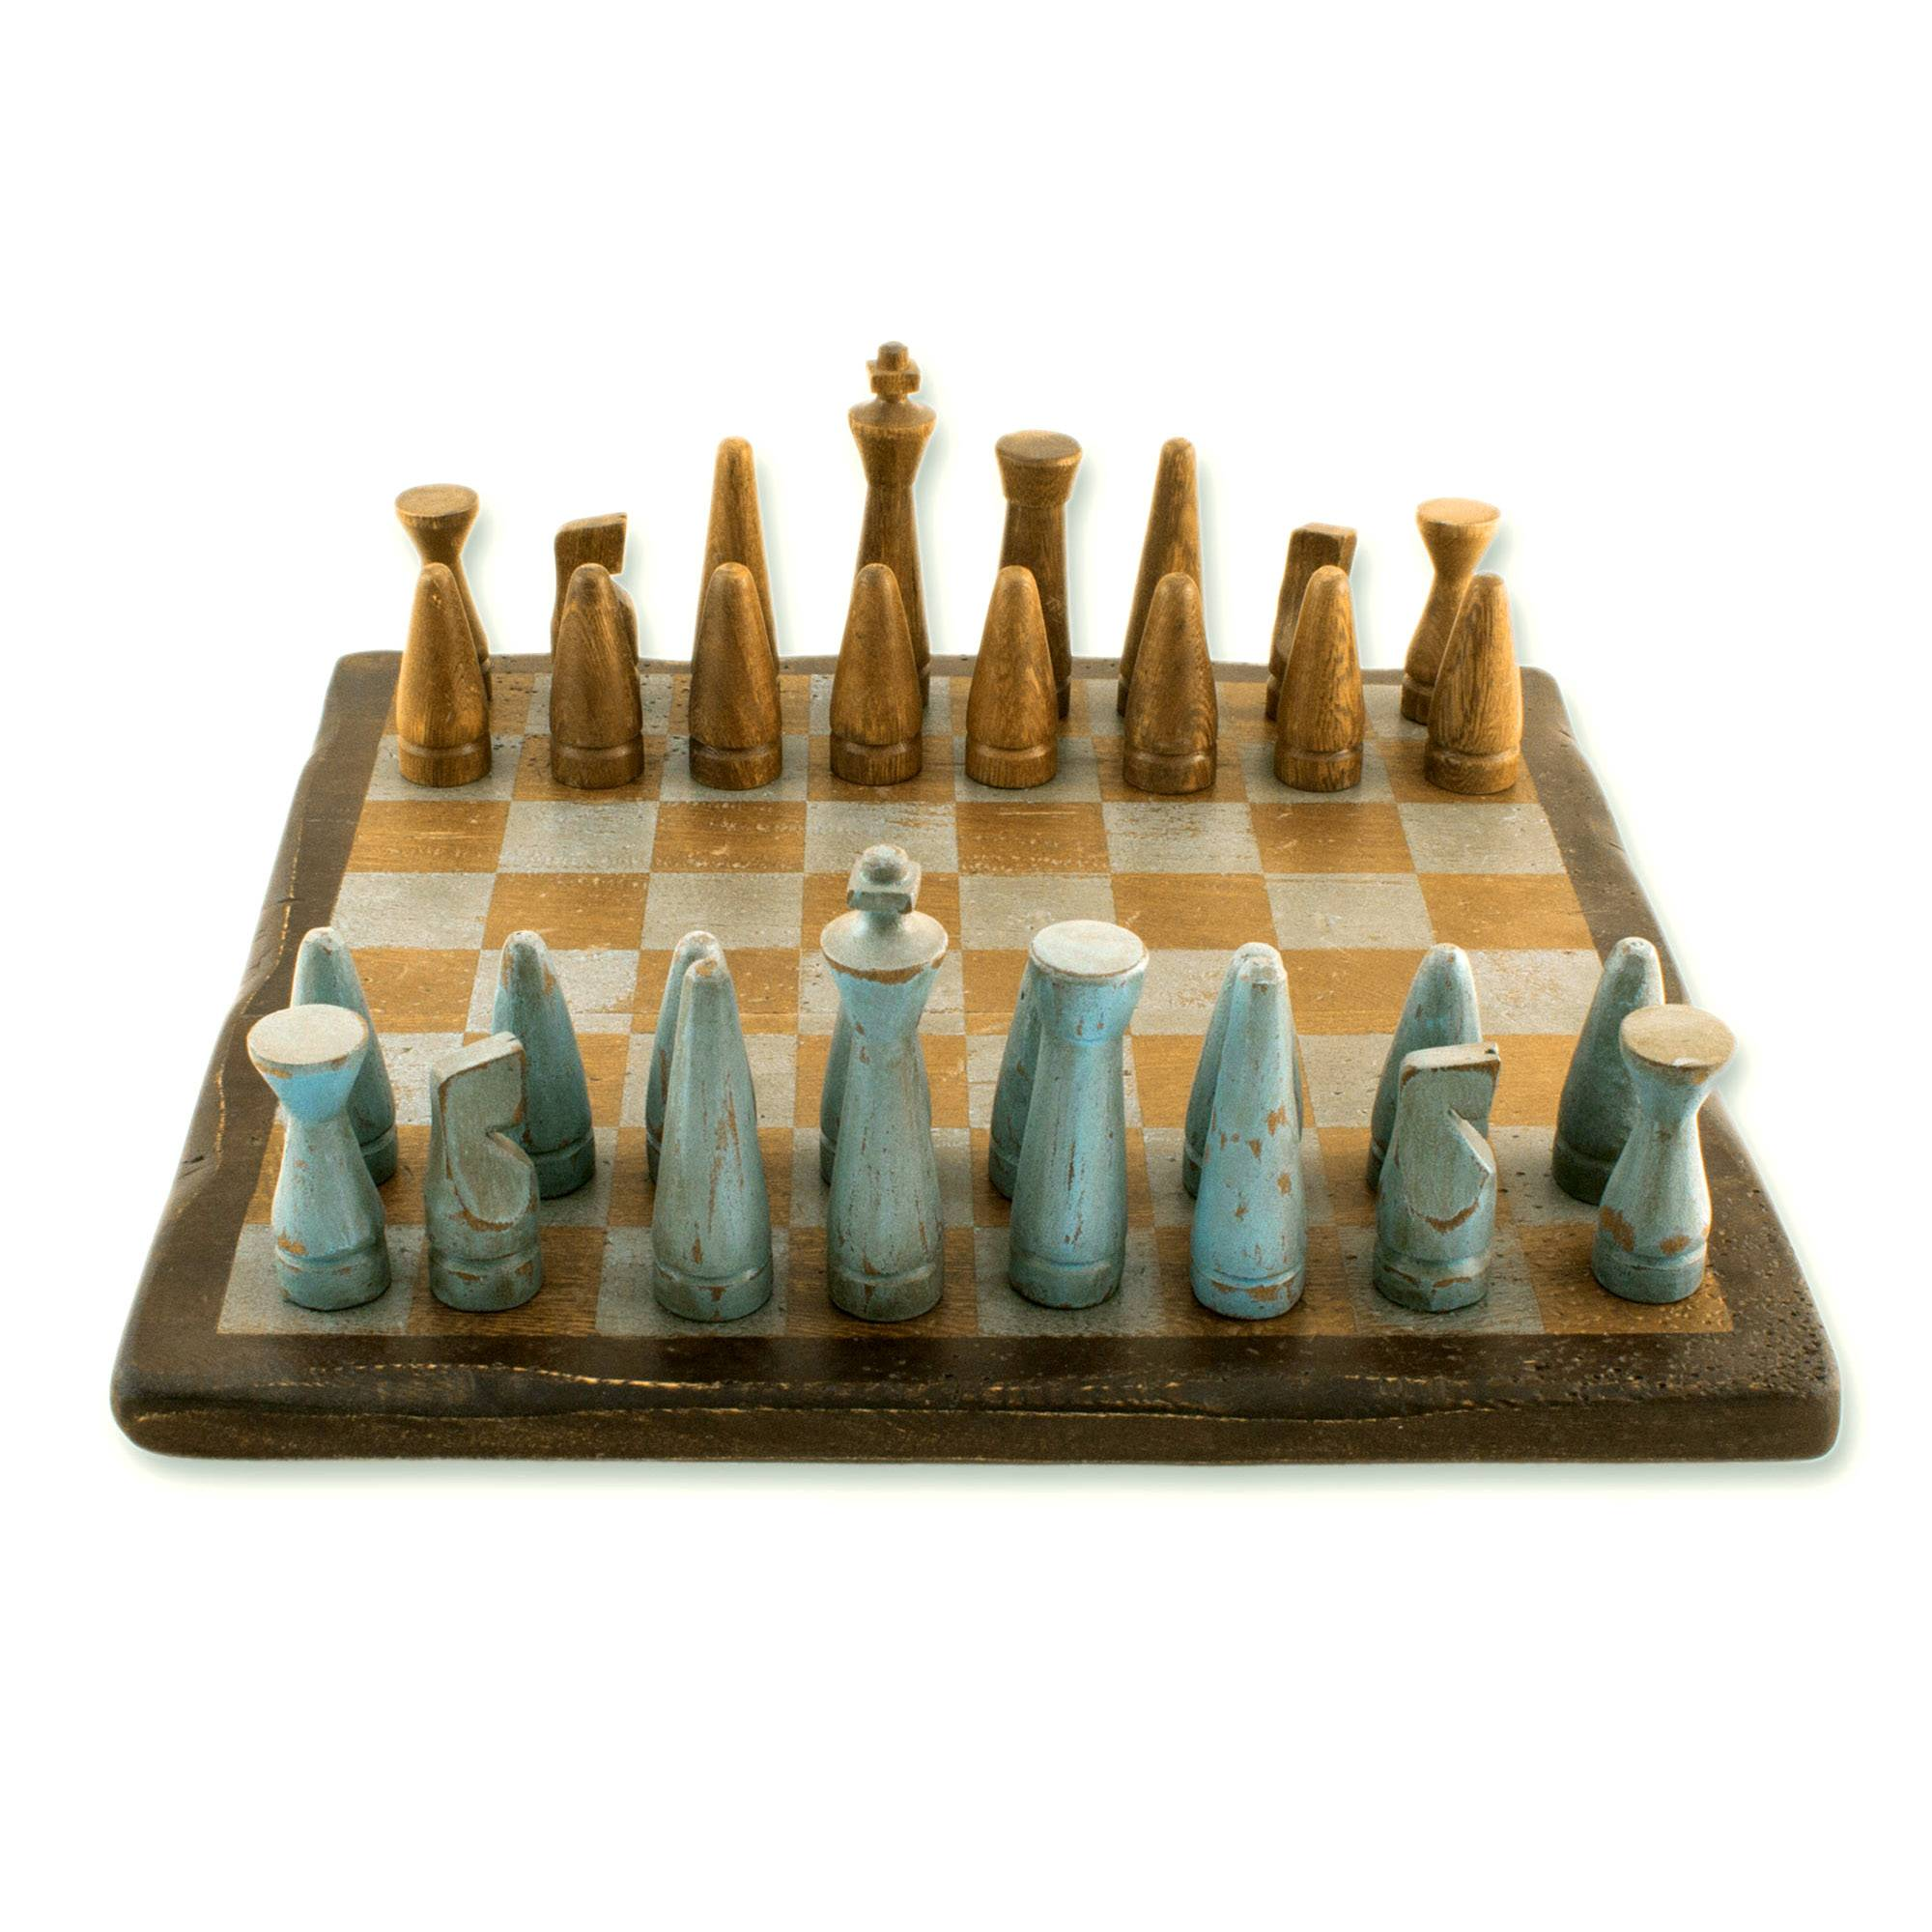 unique chess sets unicef uk market unique mexican chess set evening 29893